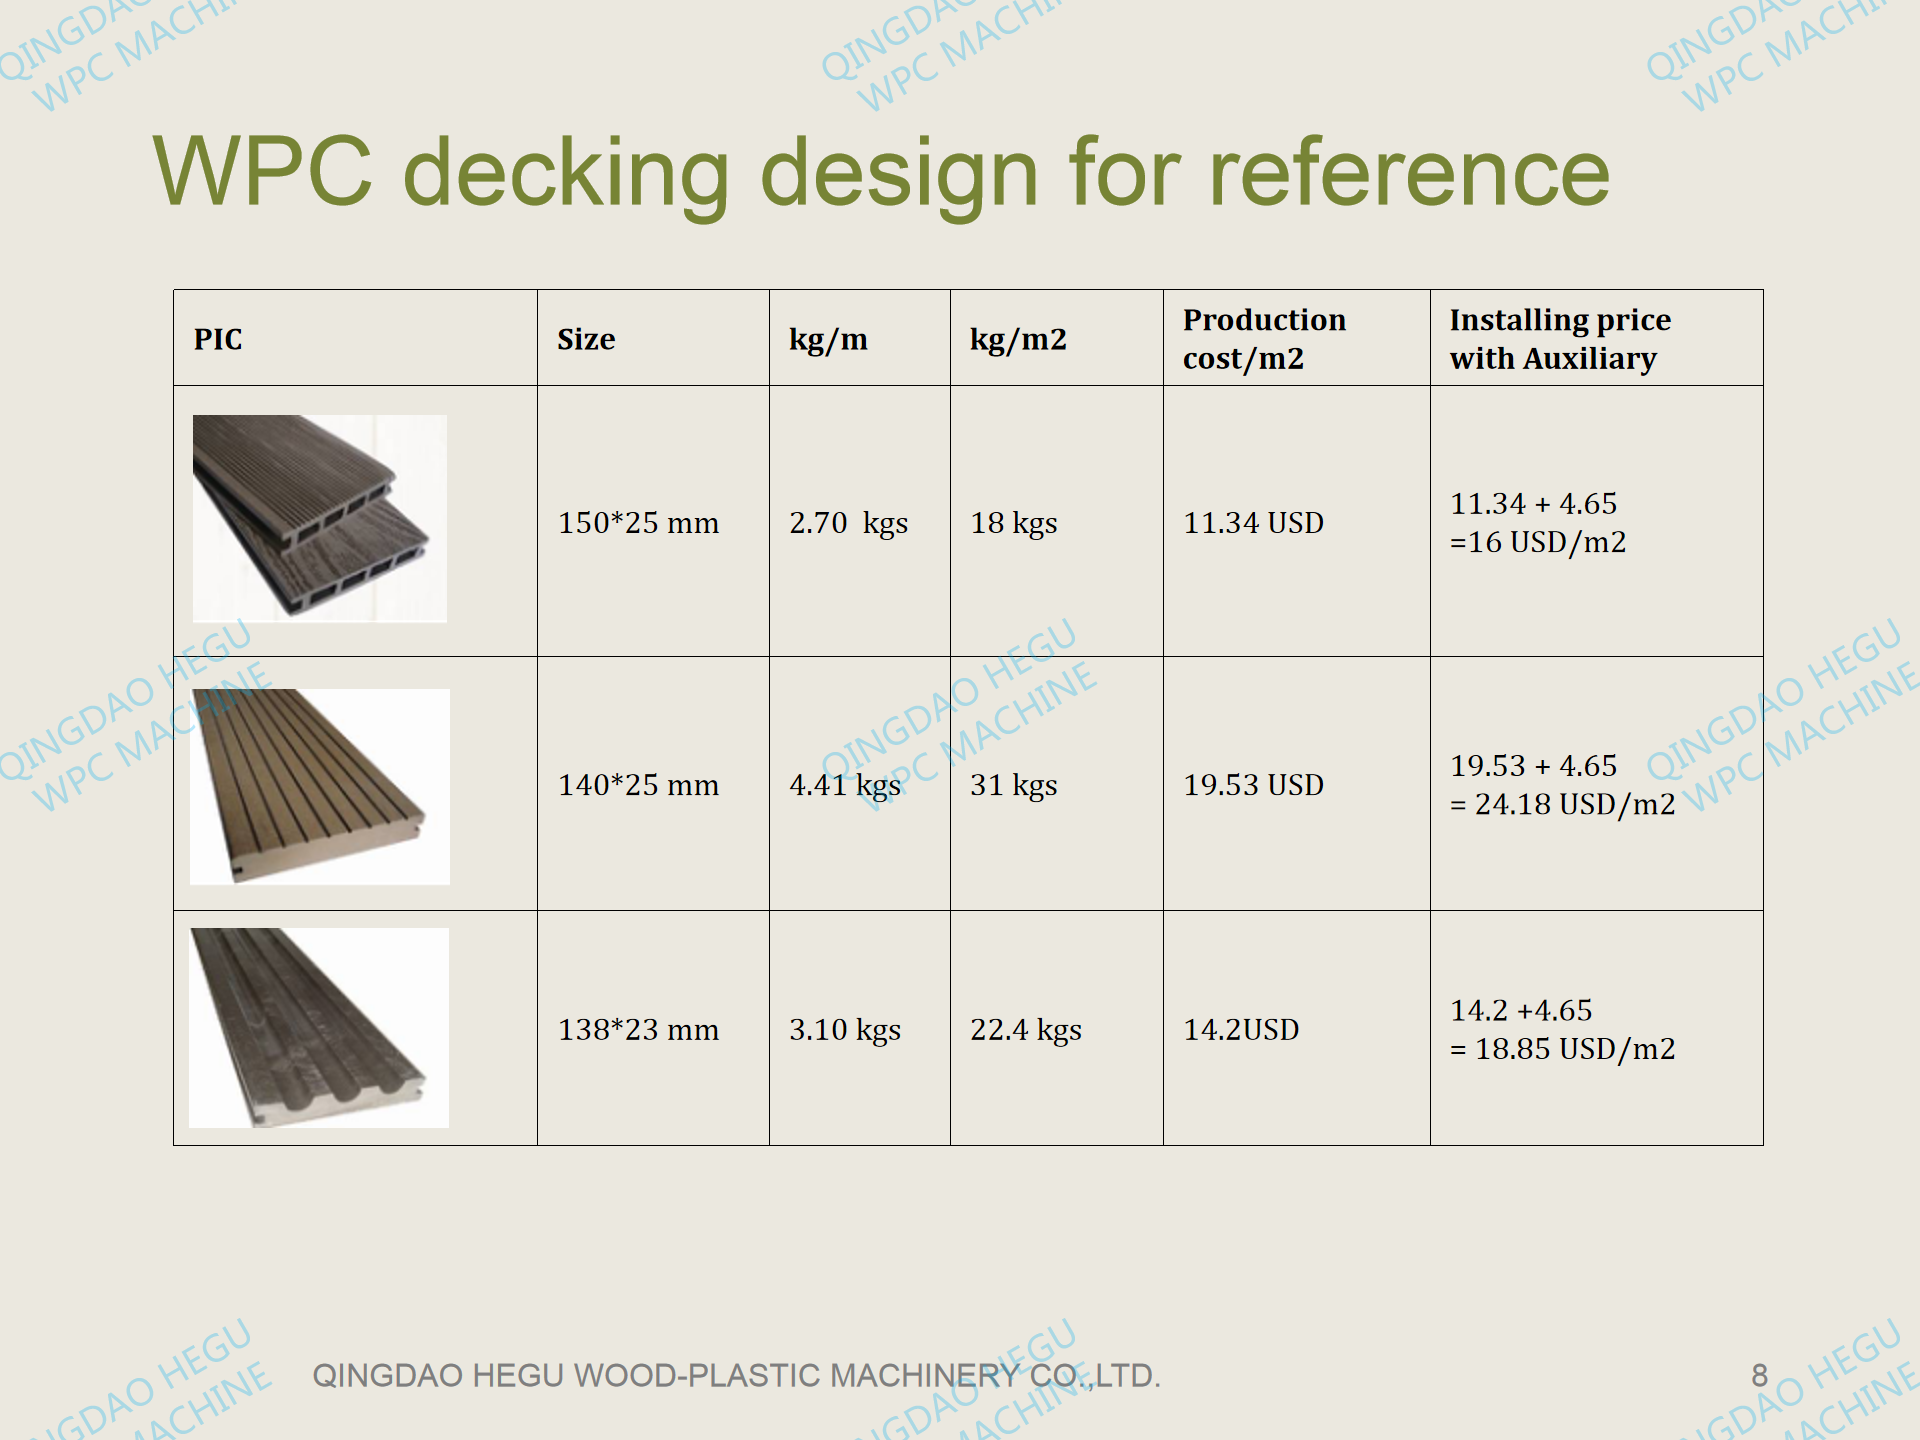 WPC decking cost